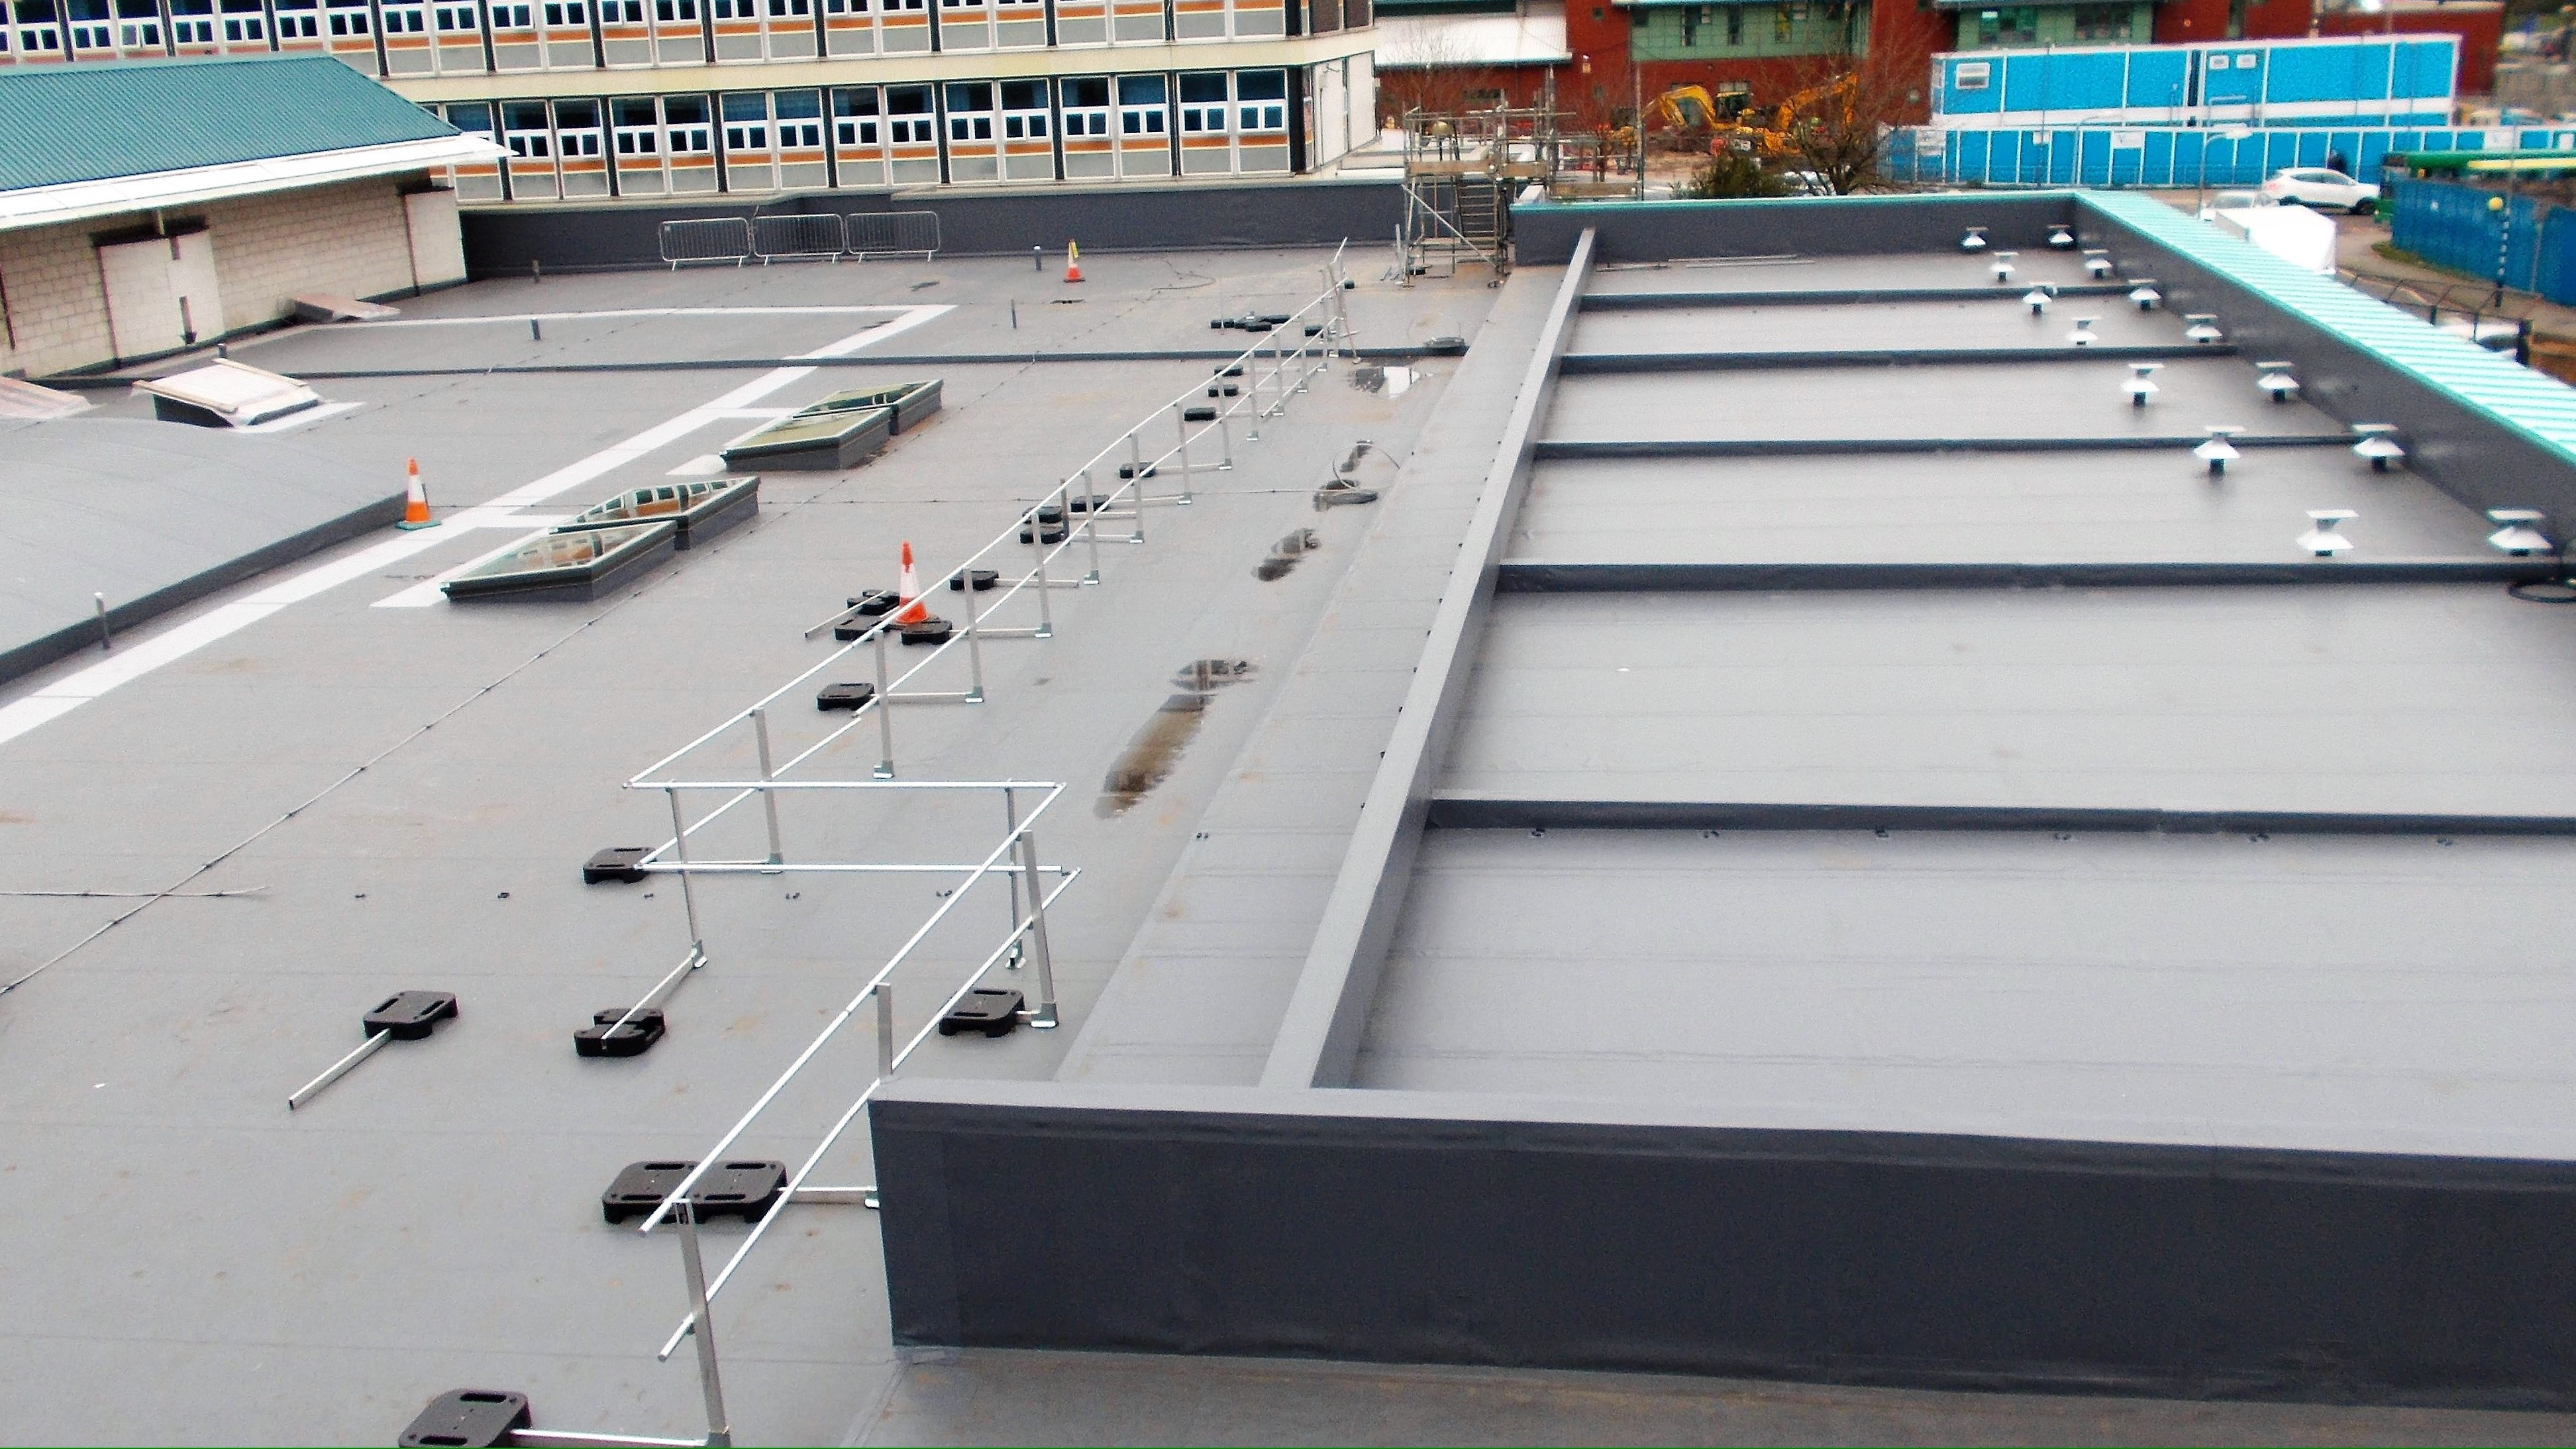 Aintree Hospital Reynolux Roofing Cladding Longworth Aintree Hospital Liverpool Fatra Optimo Traditional Textures (10)